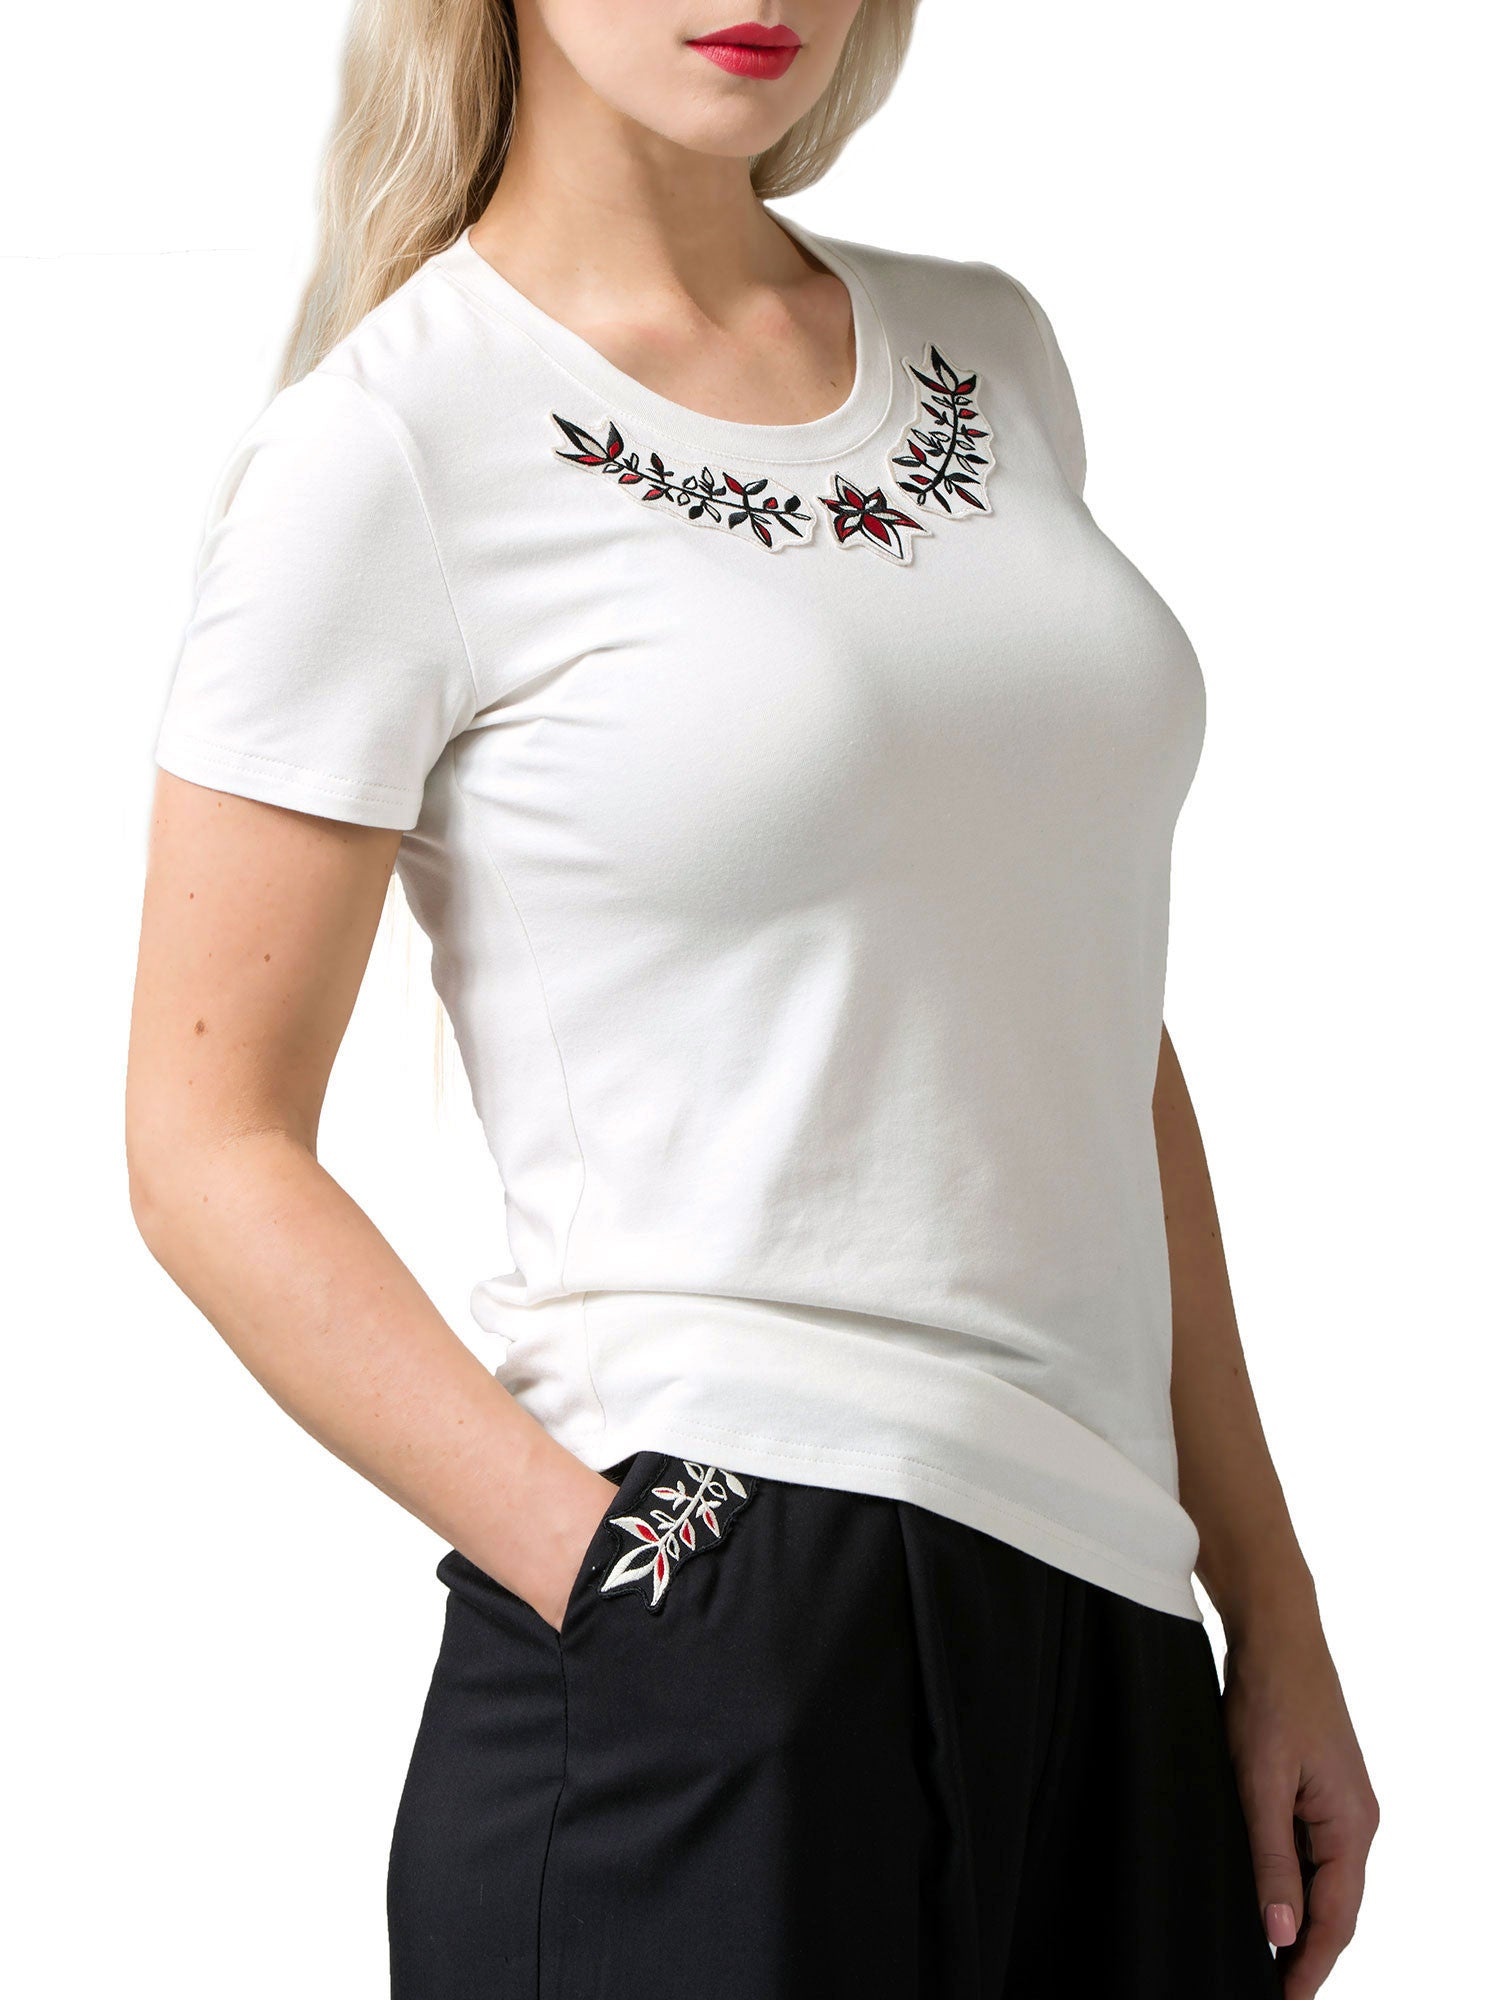 PRIGITTE White Bamboo Embroidered T-shirt